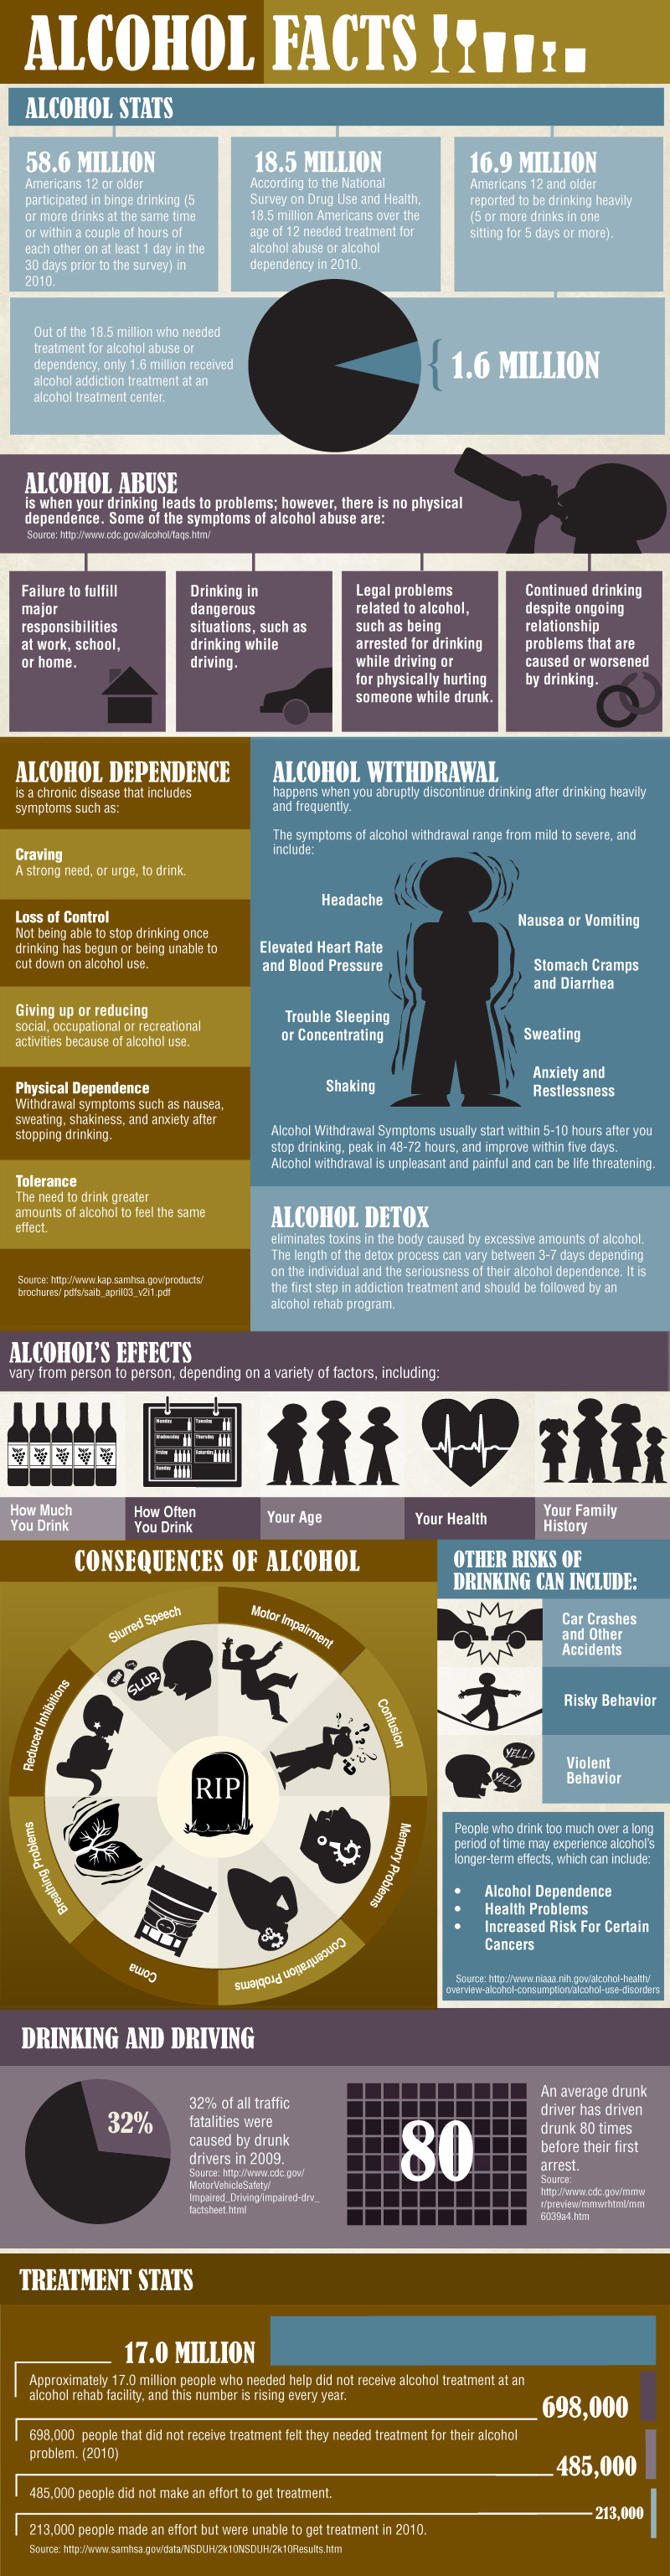 consequences-of-alcohol-abuse_50533c687d4b4